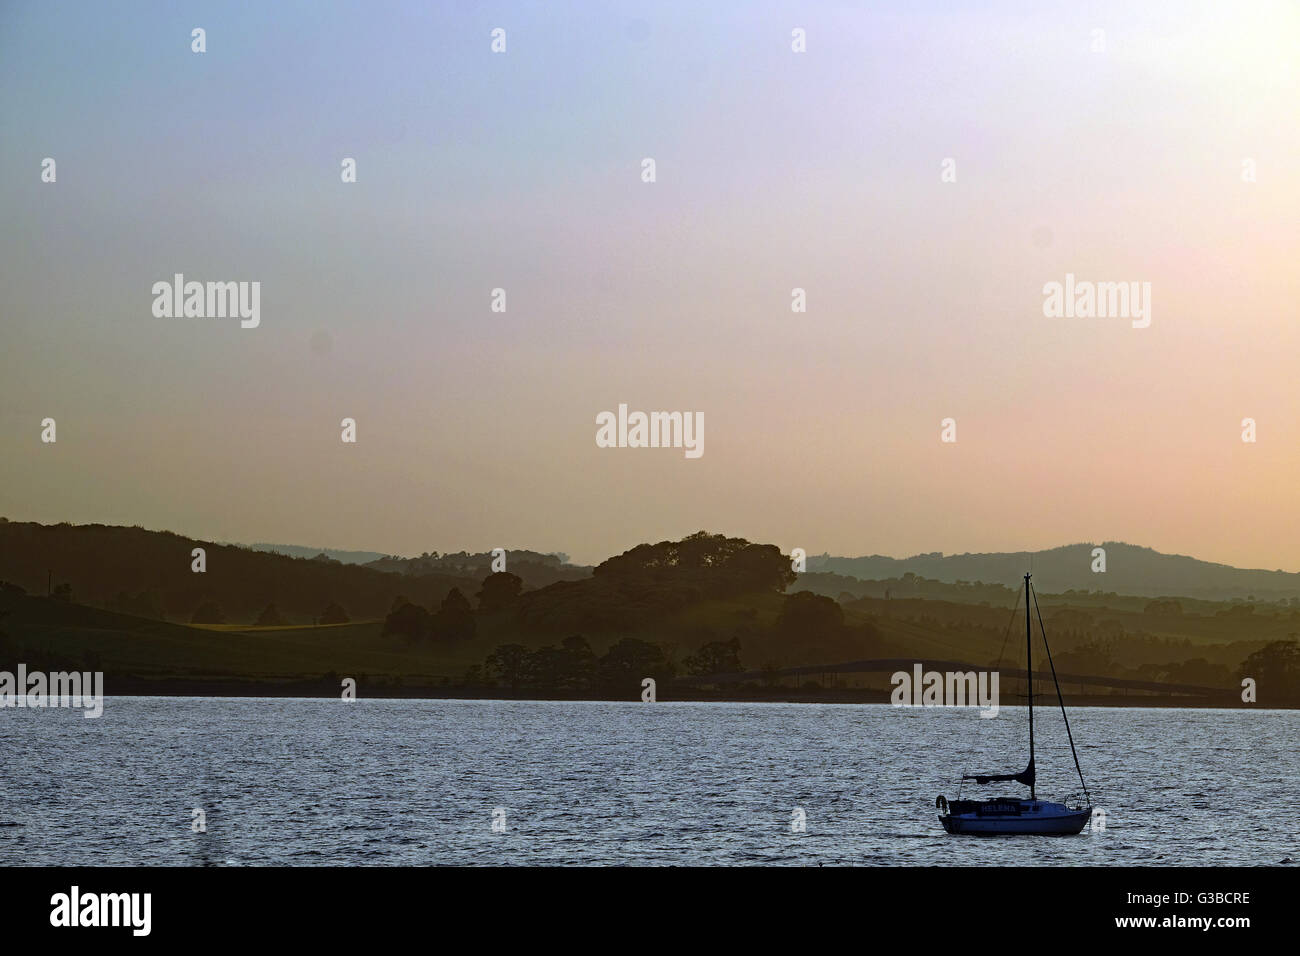 Sunset over the River Exe, with a single sailing boat in silhouette - Stock Image